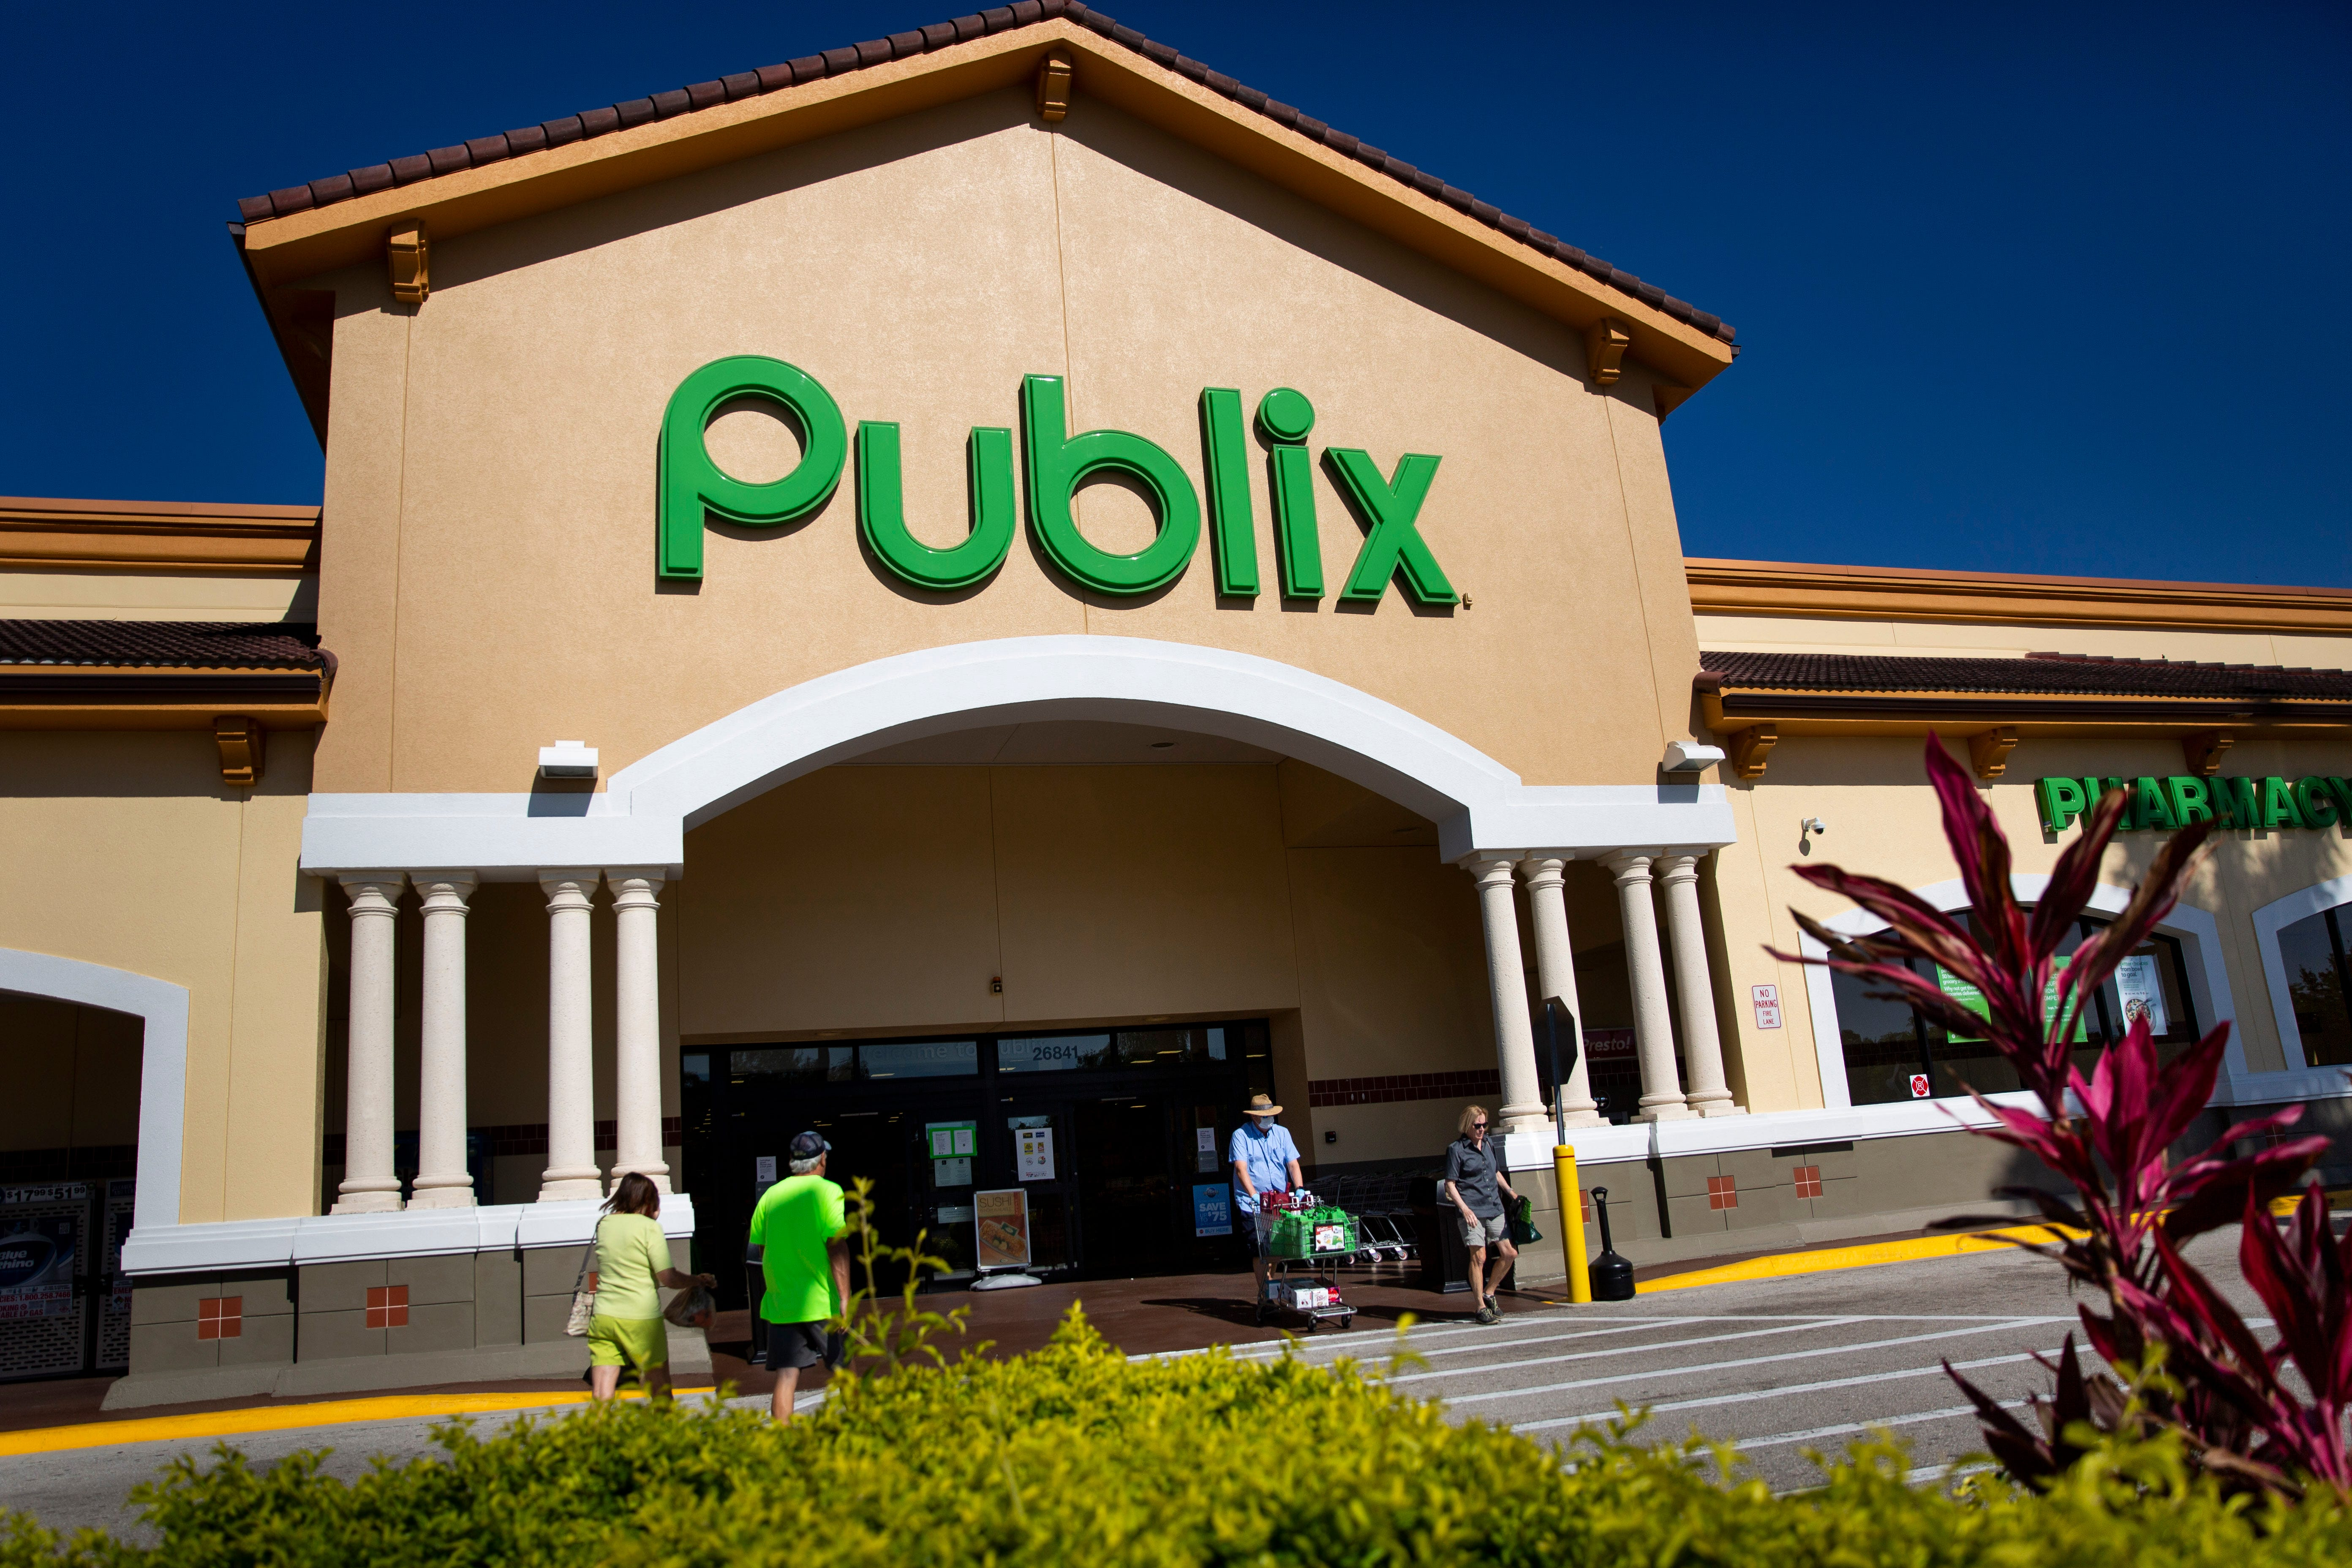 Publix to require masks in stores starting July 21